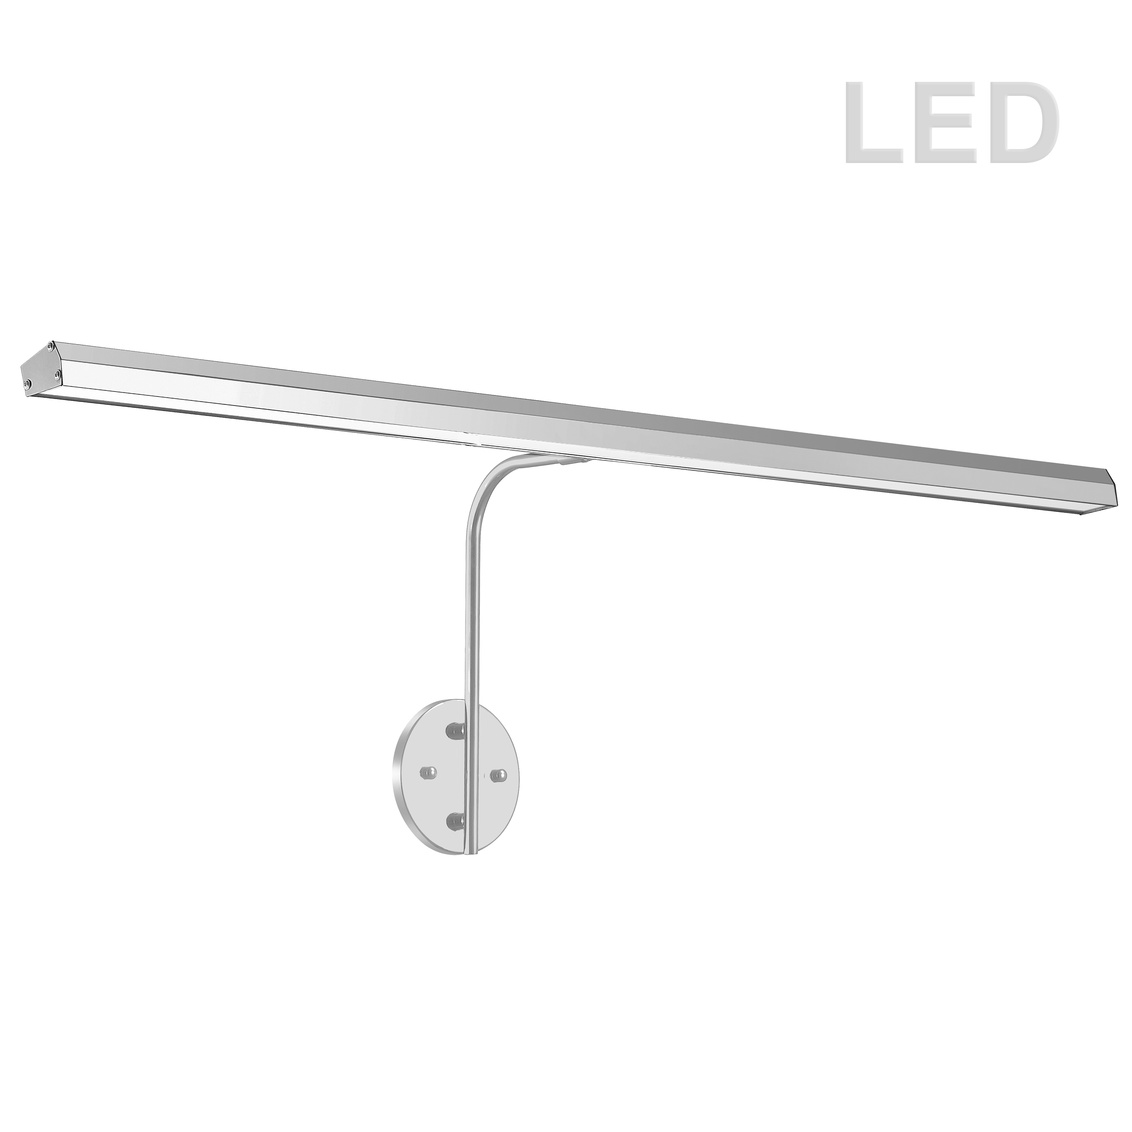 LED PICTURE LIGHT, PIC120-XXLED-XX